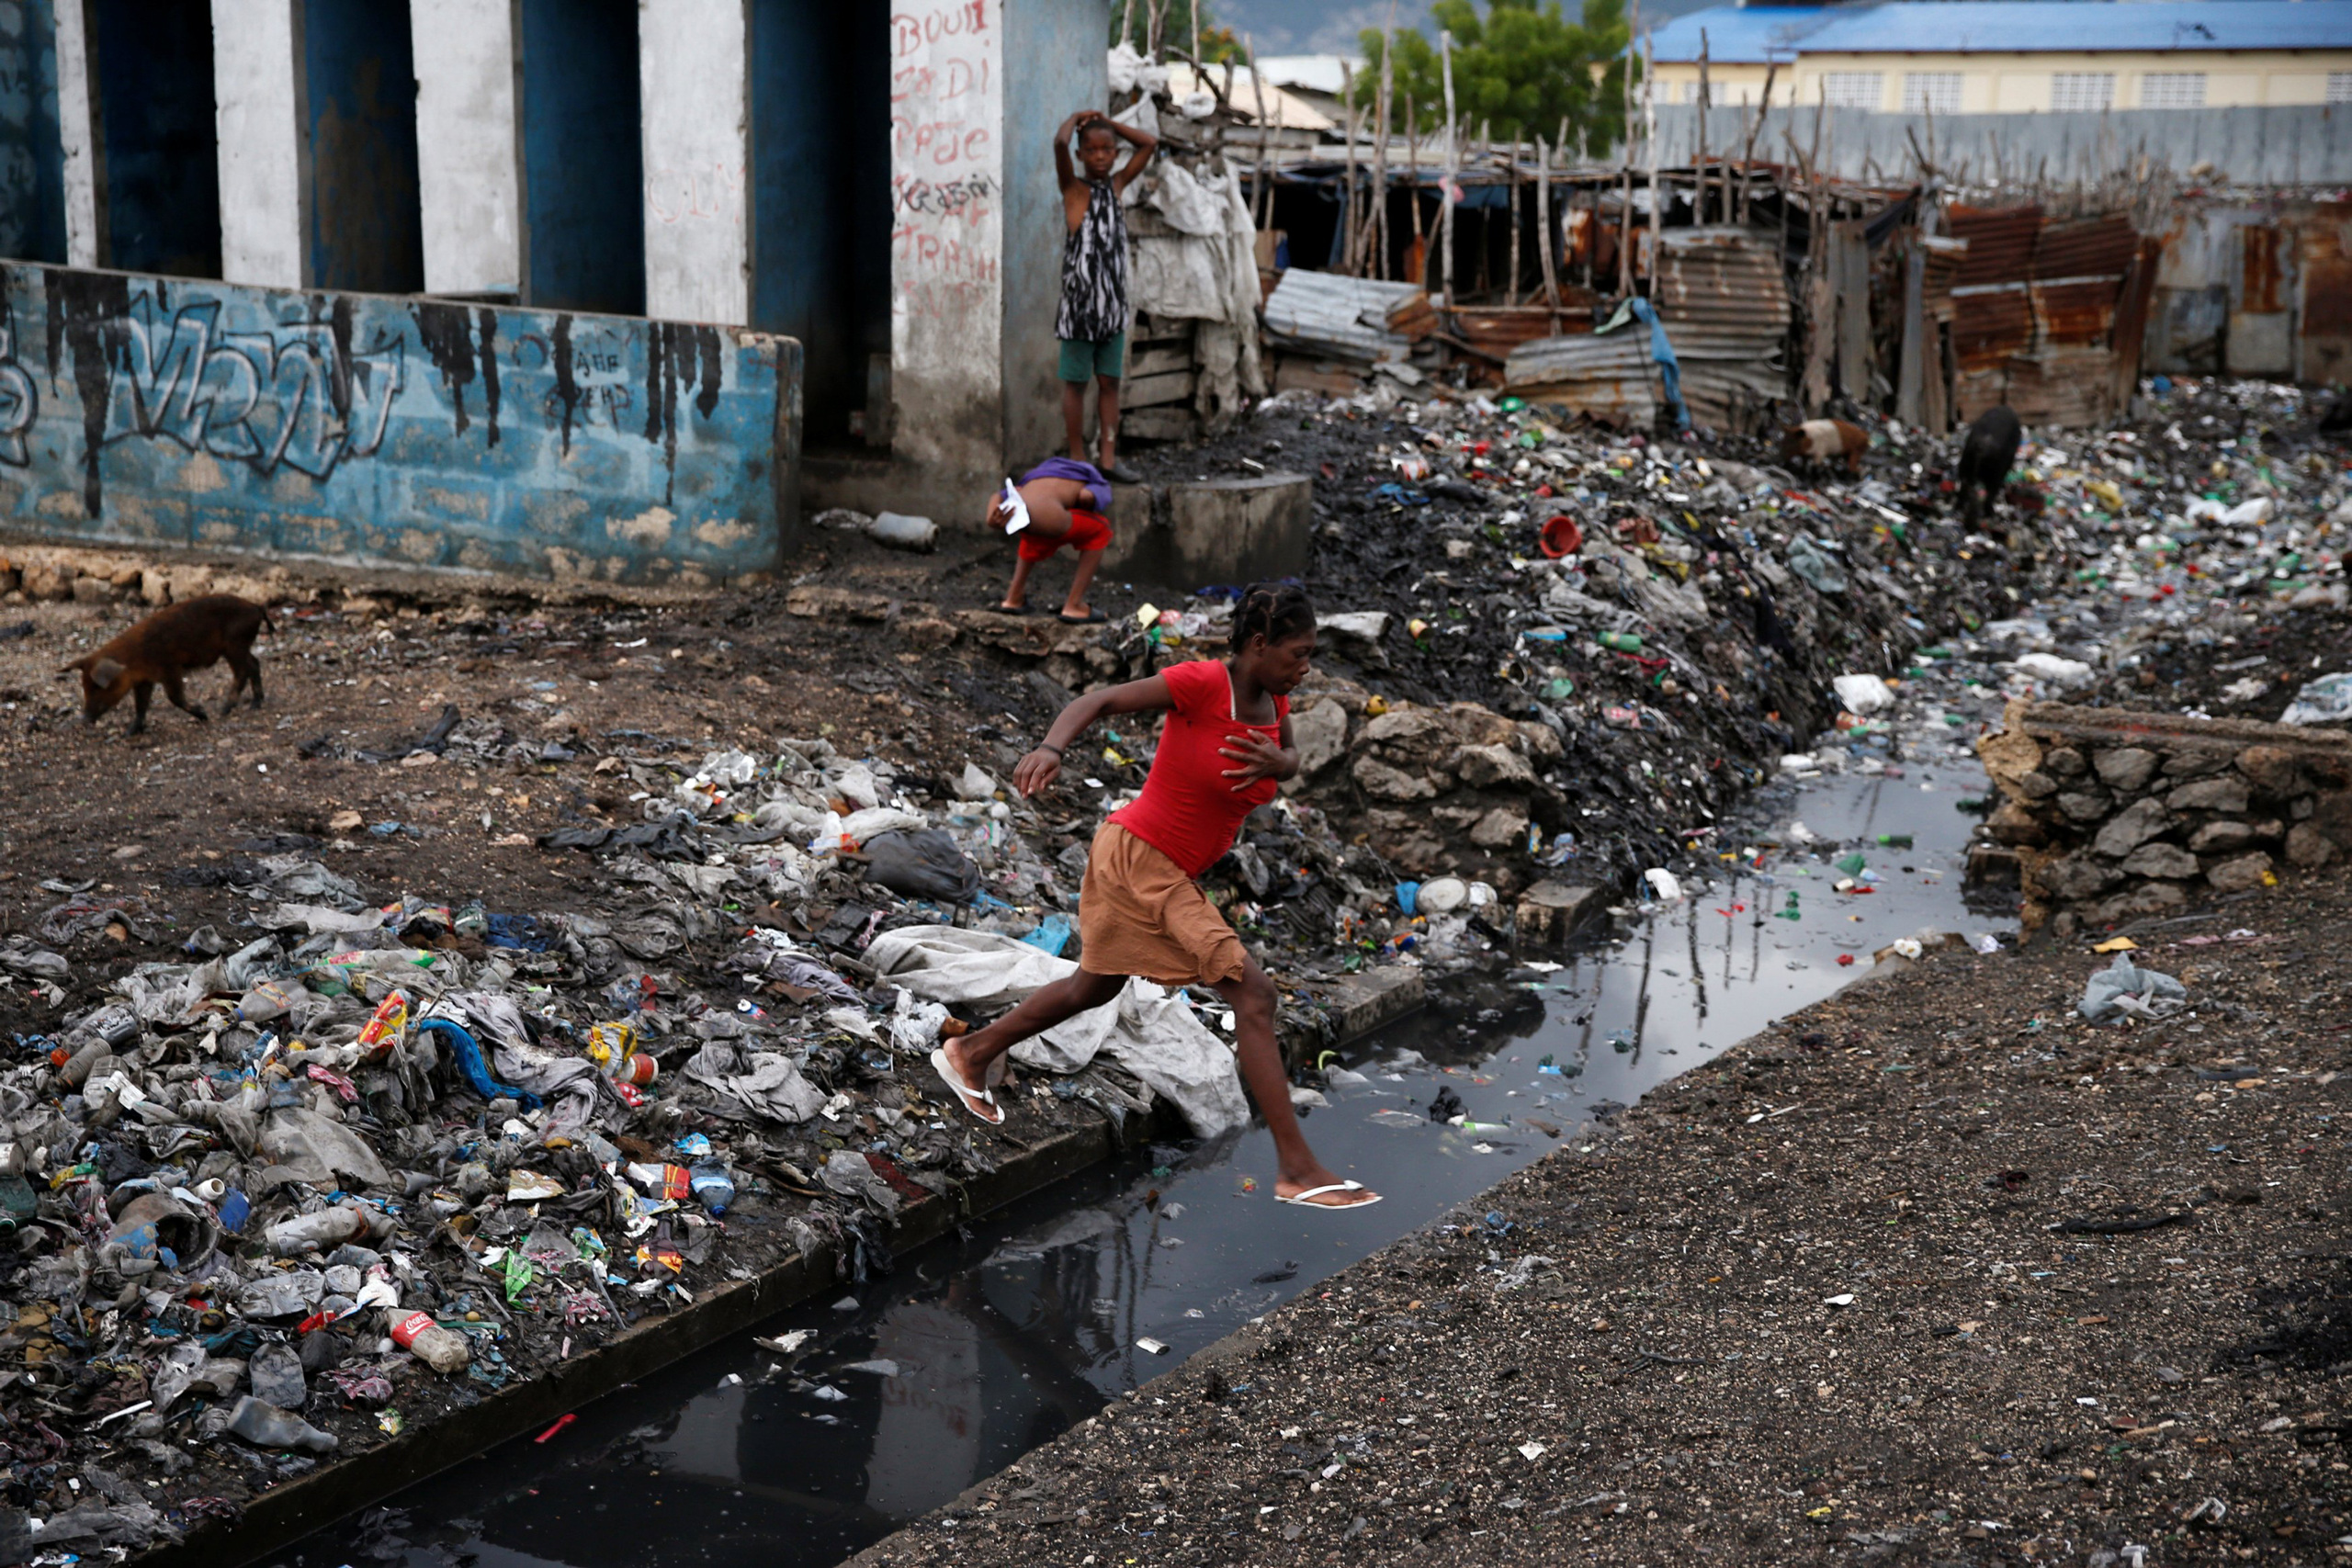 A woman crosses over a water canal after Hurricane Matthew passes Cite-Soleil in Port-au-Prince, Haiti, on Oct. 5, 2016.